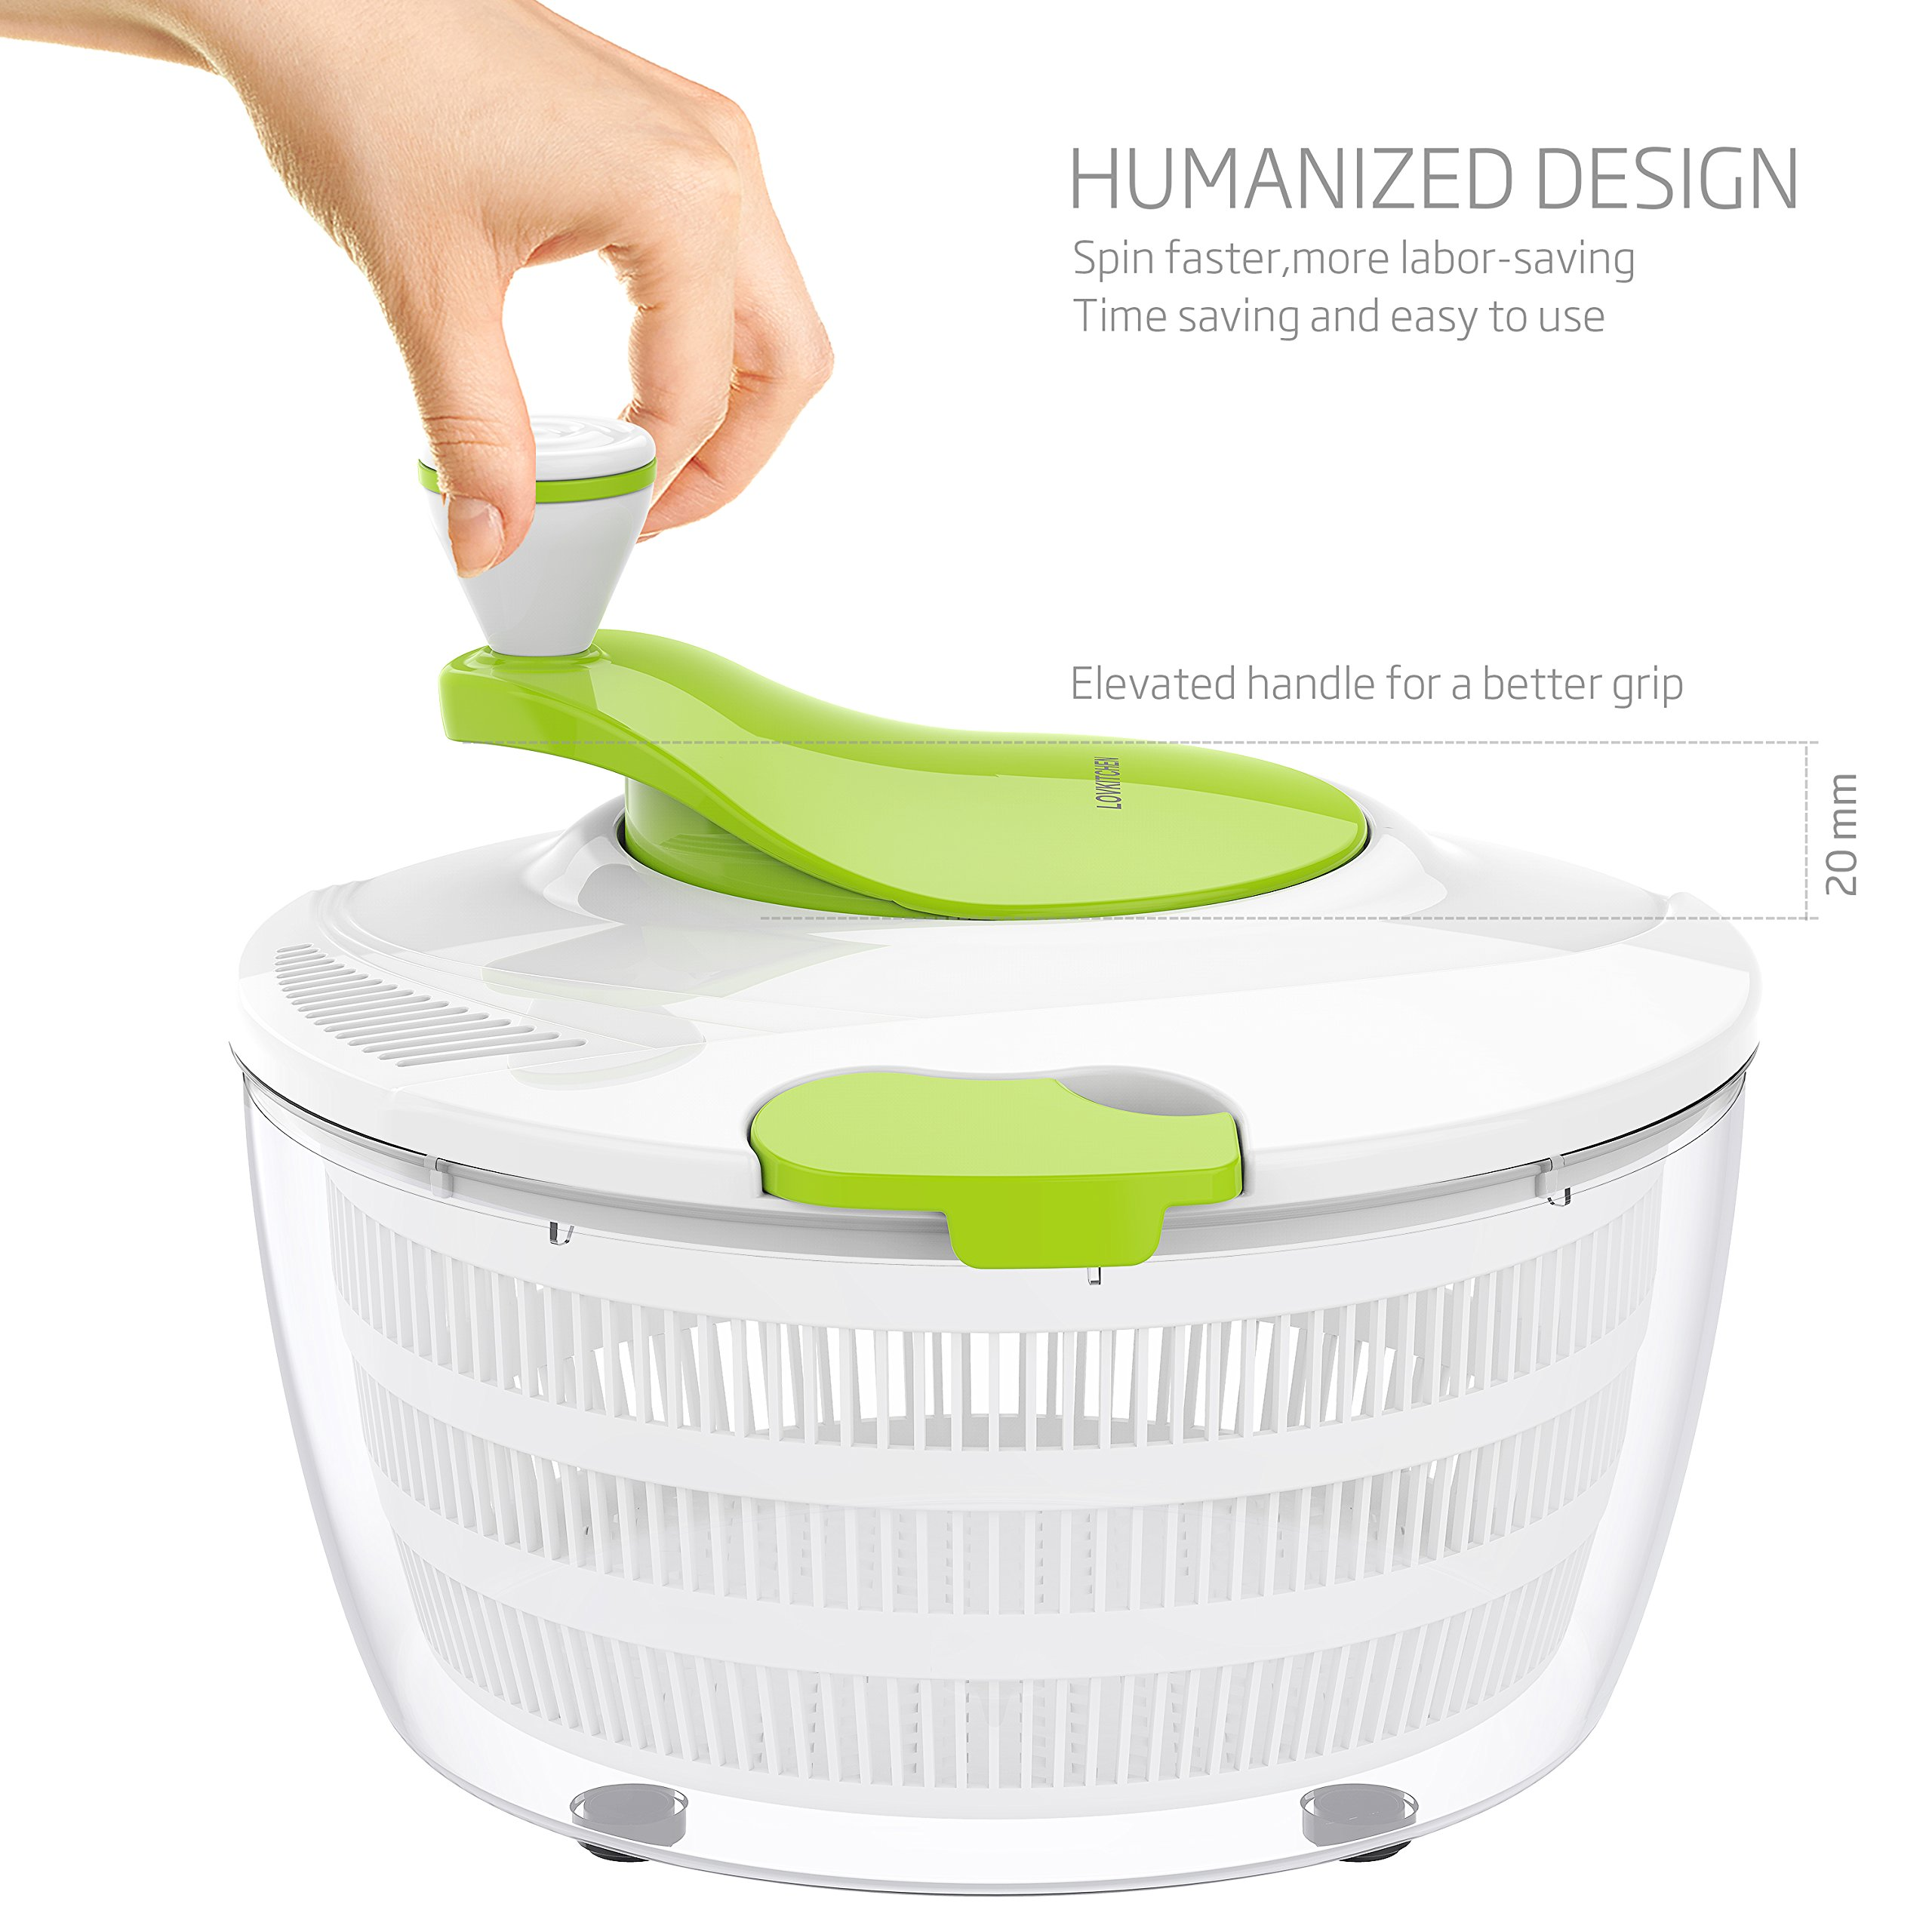 Salad Spinner LOVKITCHEN Large 4 Quarts Fruits and Vegetables Dryer Quick Dry Design BPA Free Dry Off & Drain Lettuce and Vegetable with Ease for Tastier Salads and Faster Food Prep